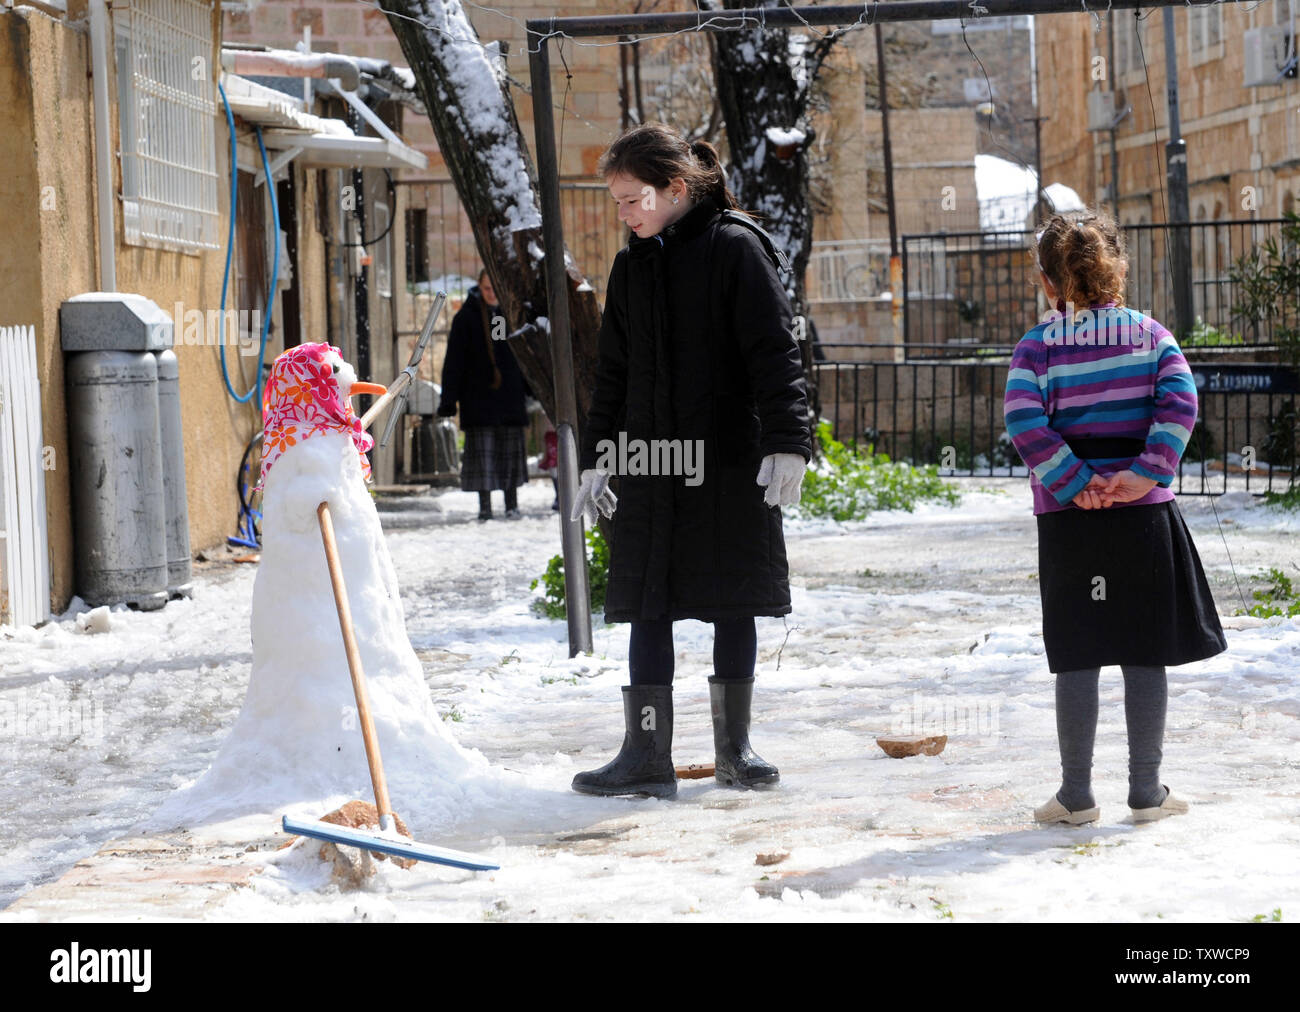 An Israeli girl builds a snow man during a rare winter snow storm in Jerusalem, March 2, 2012. Residents of Jerusalem woke to 1.575 inches of snow in the first snow fall in Jerusalem in more than two years.  UPI/Debbie Hill - Stock Image